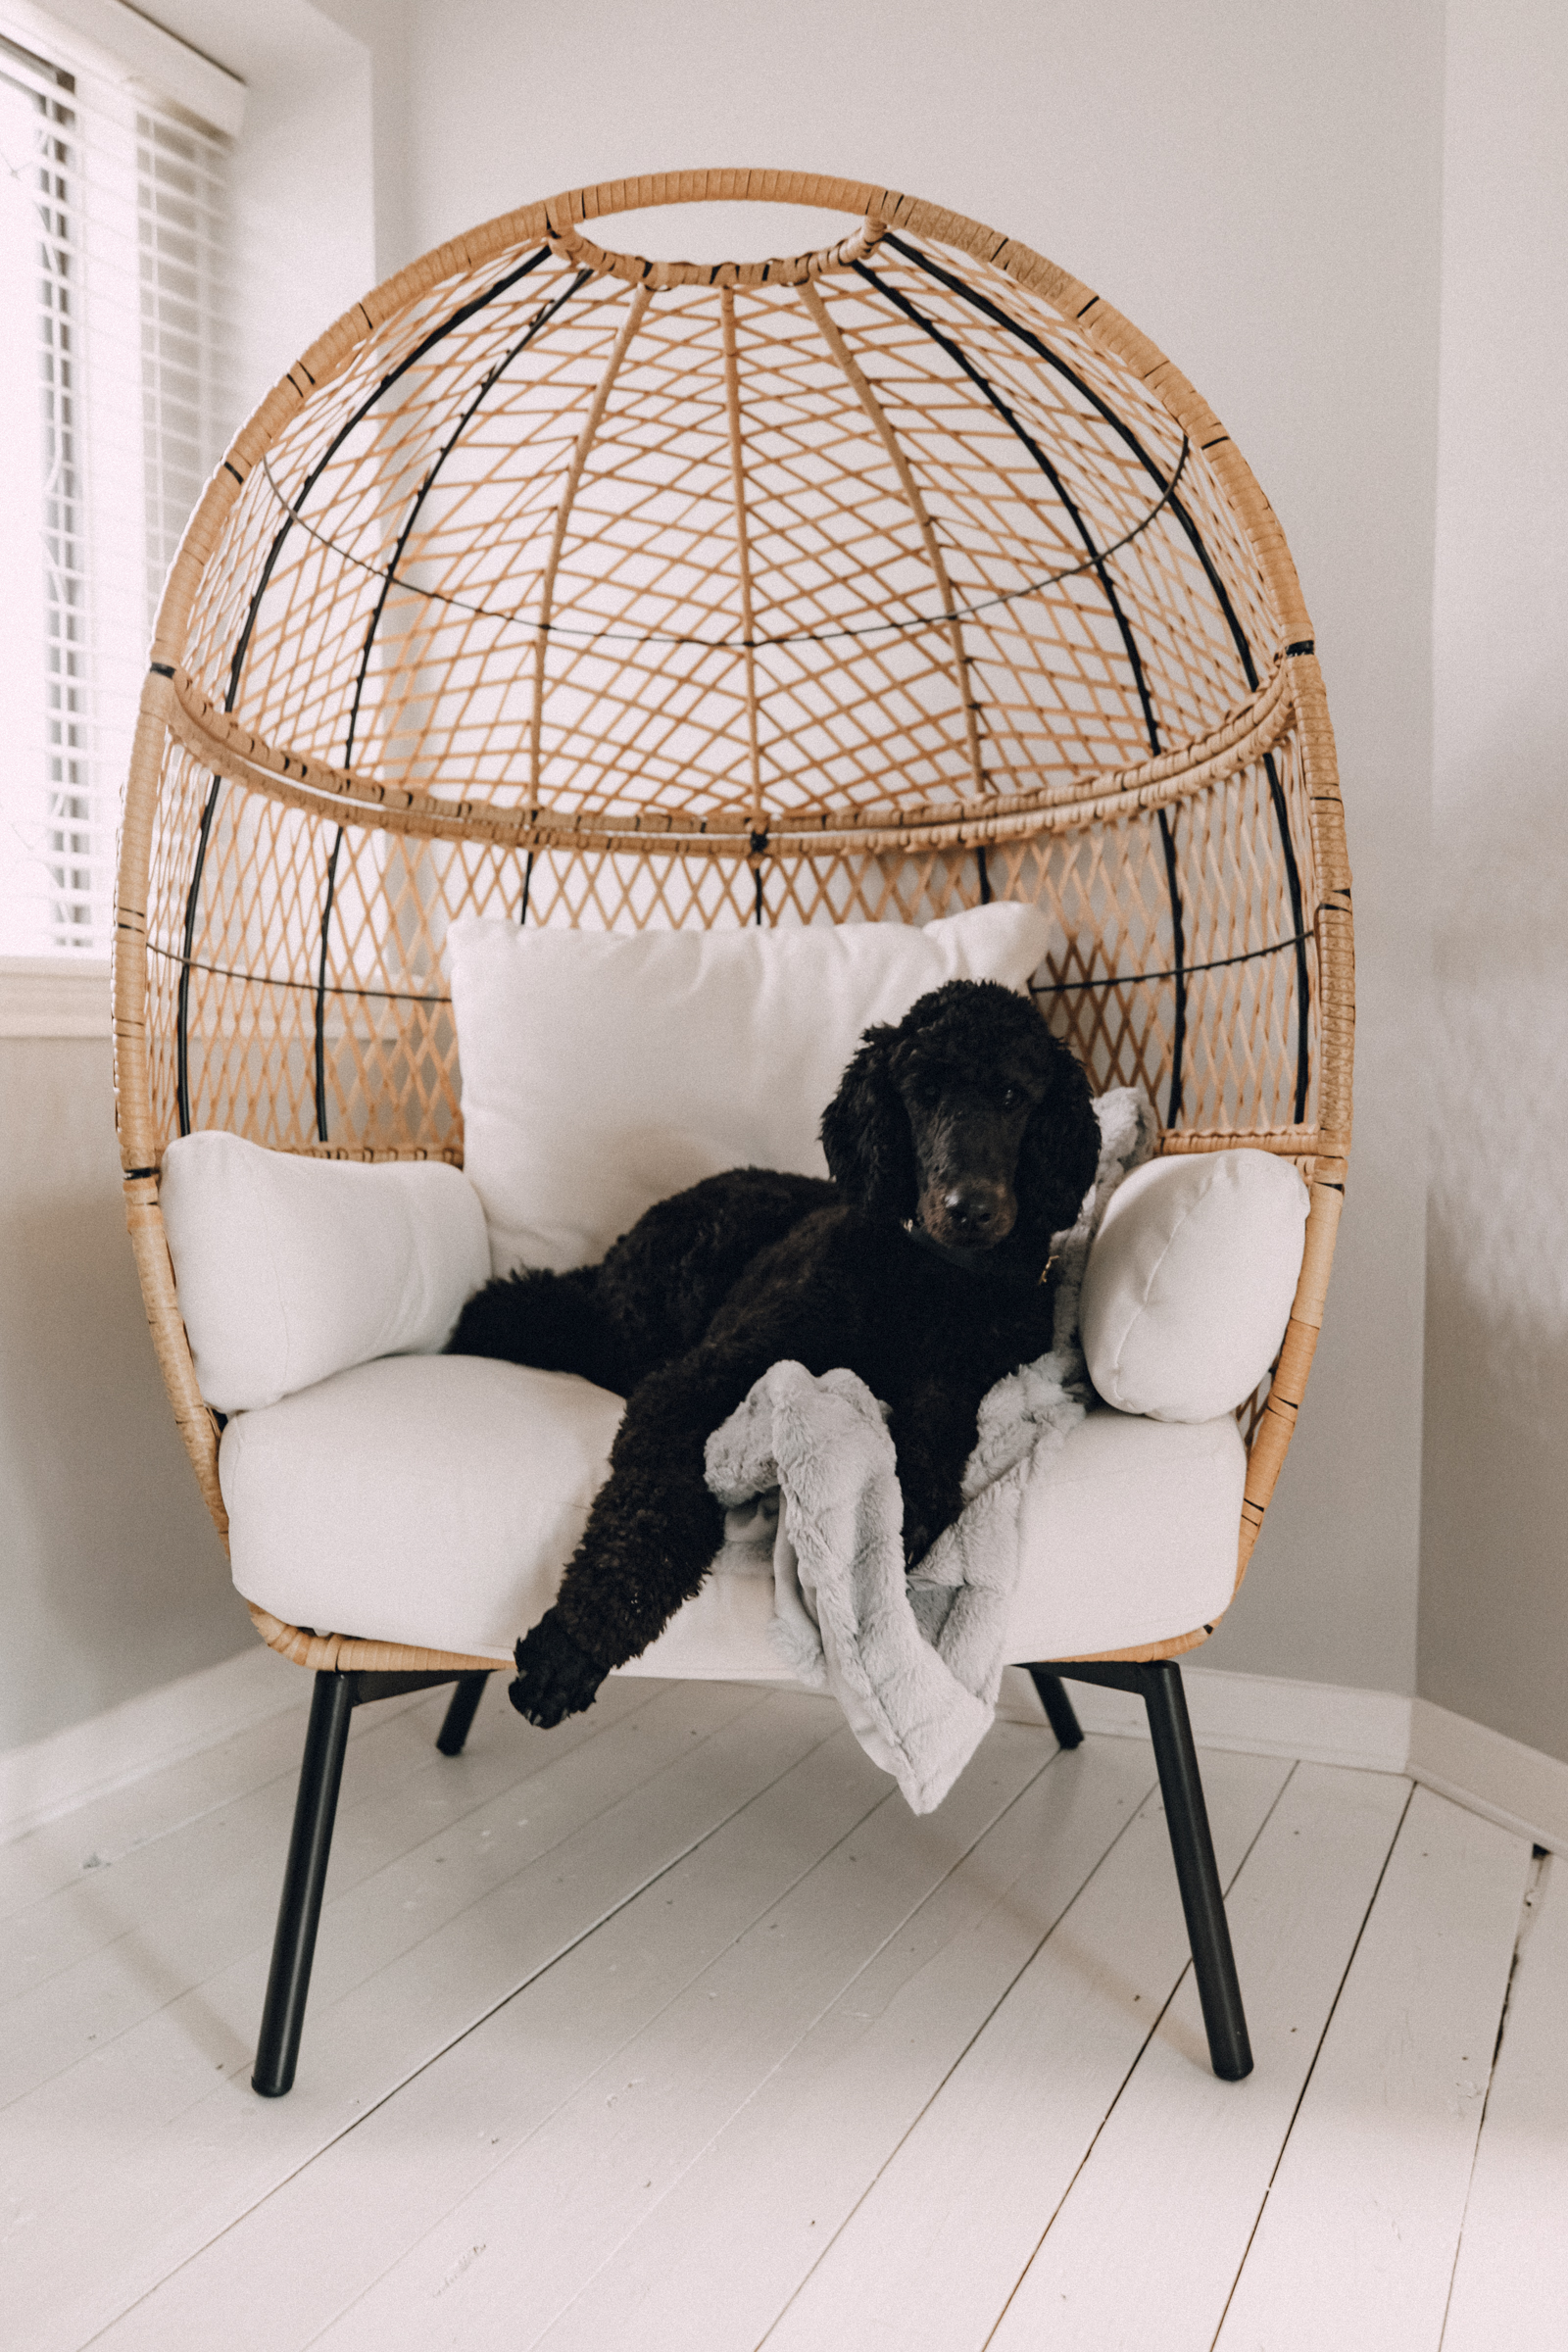 cozy and cute egg chair from Walmart